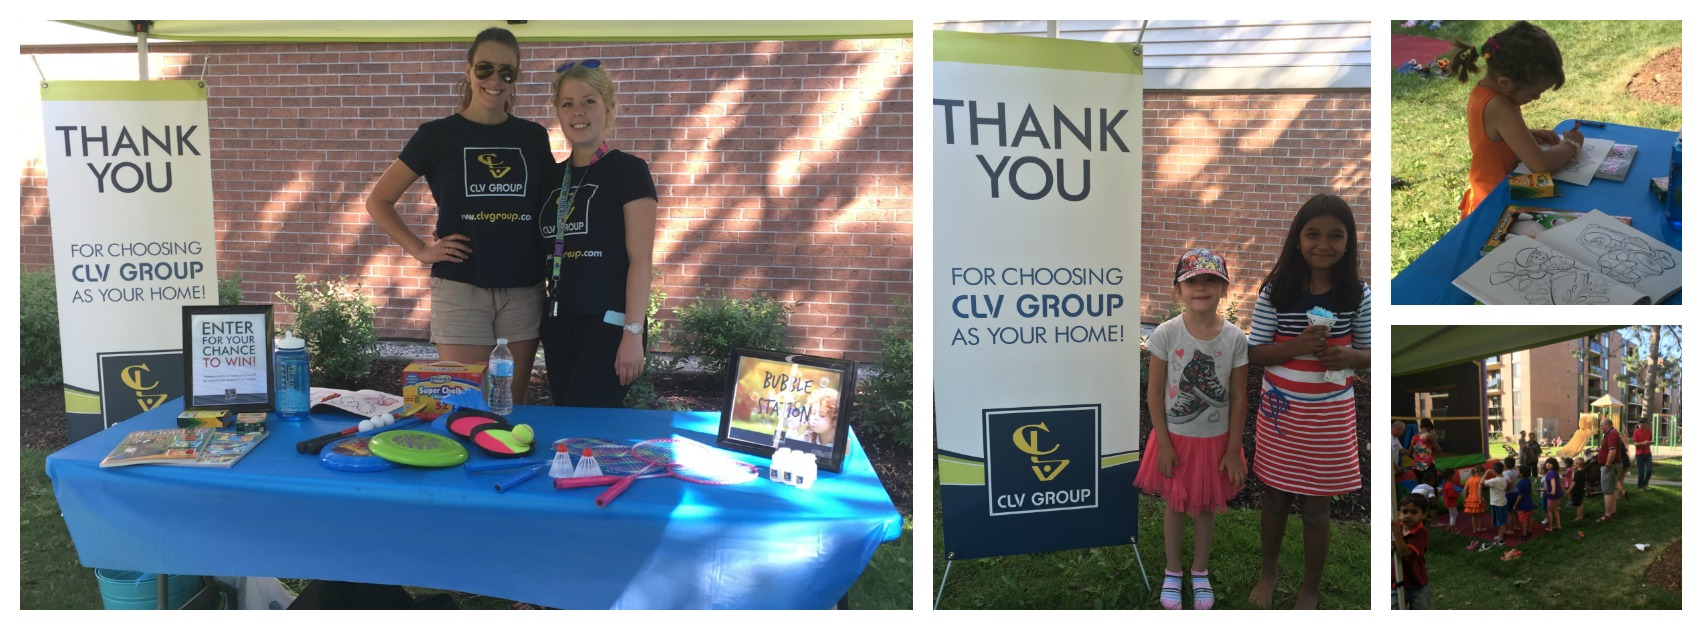 Lakeshore-Apartments-Resident-Appreciation-BBQ-CLV-Group-Collage